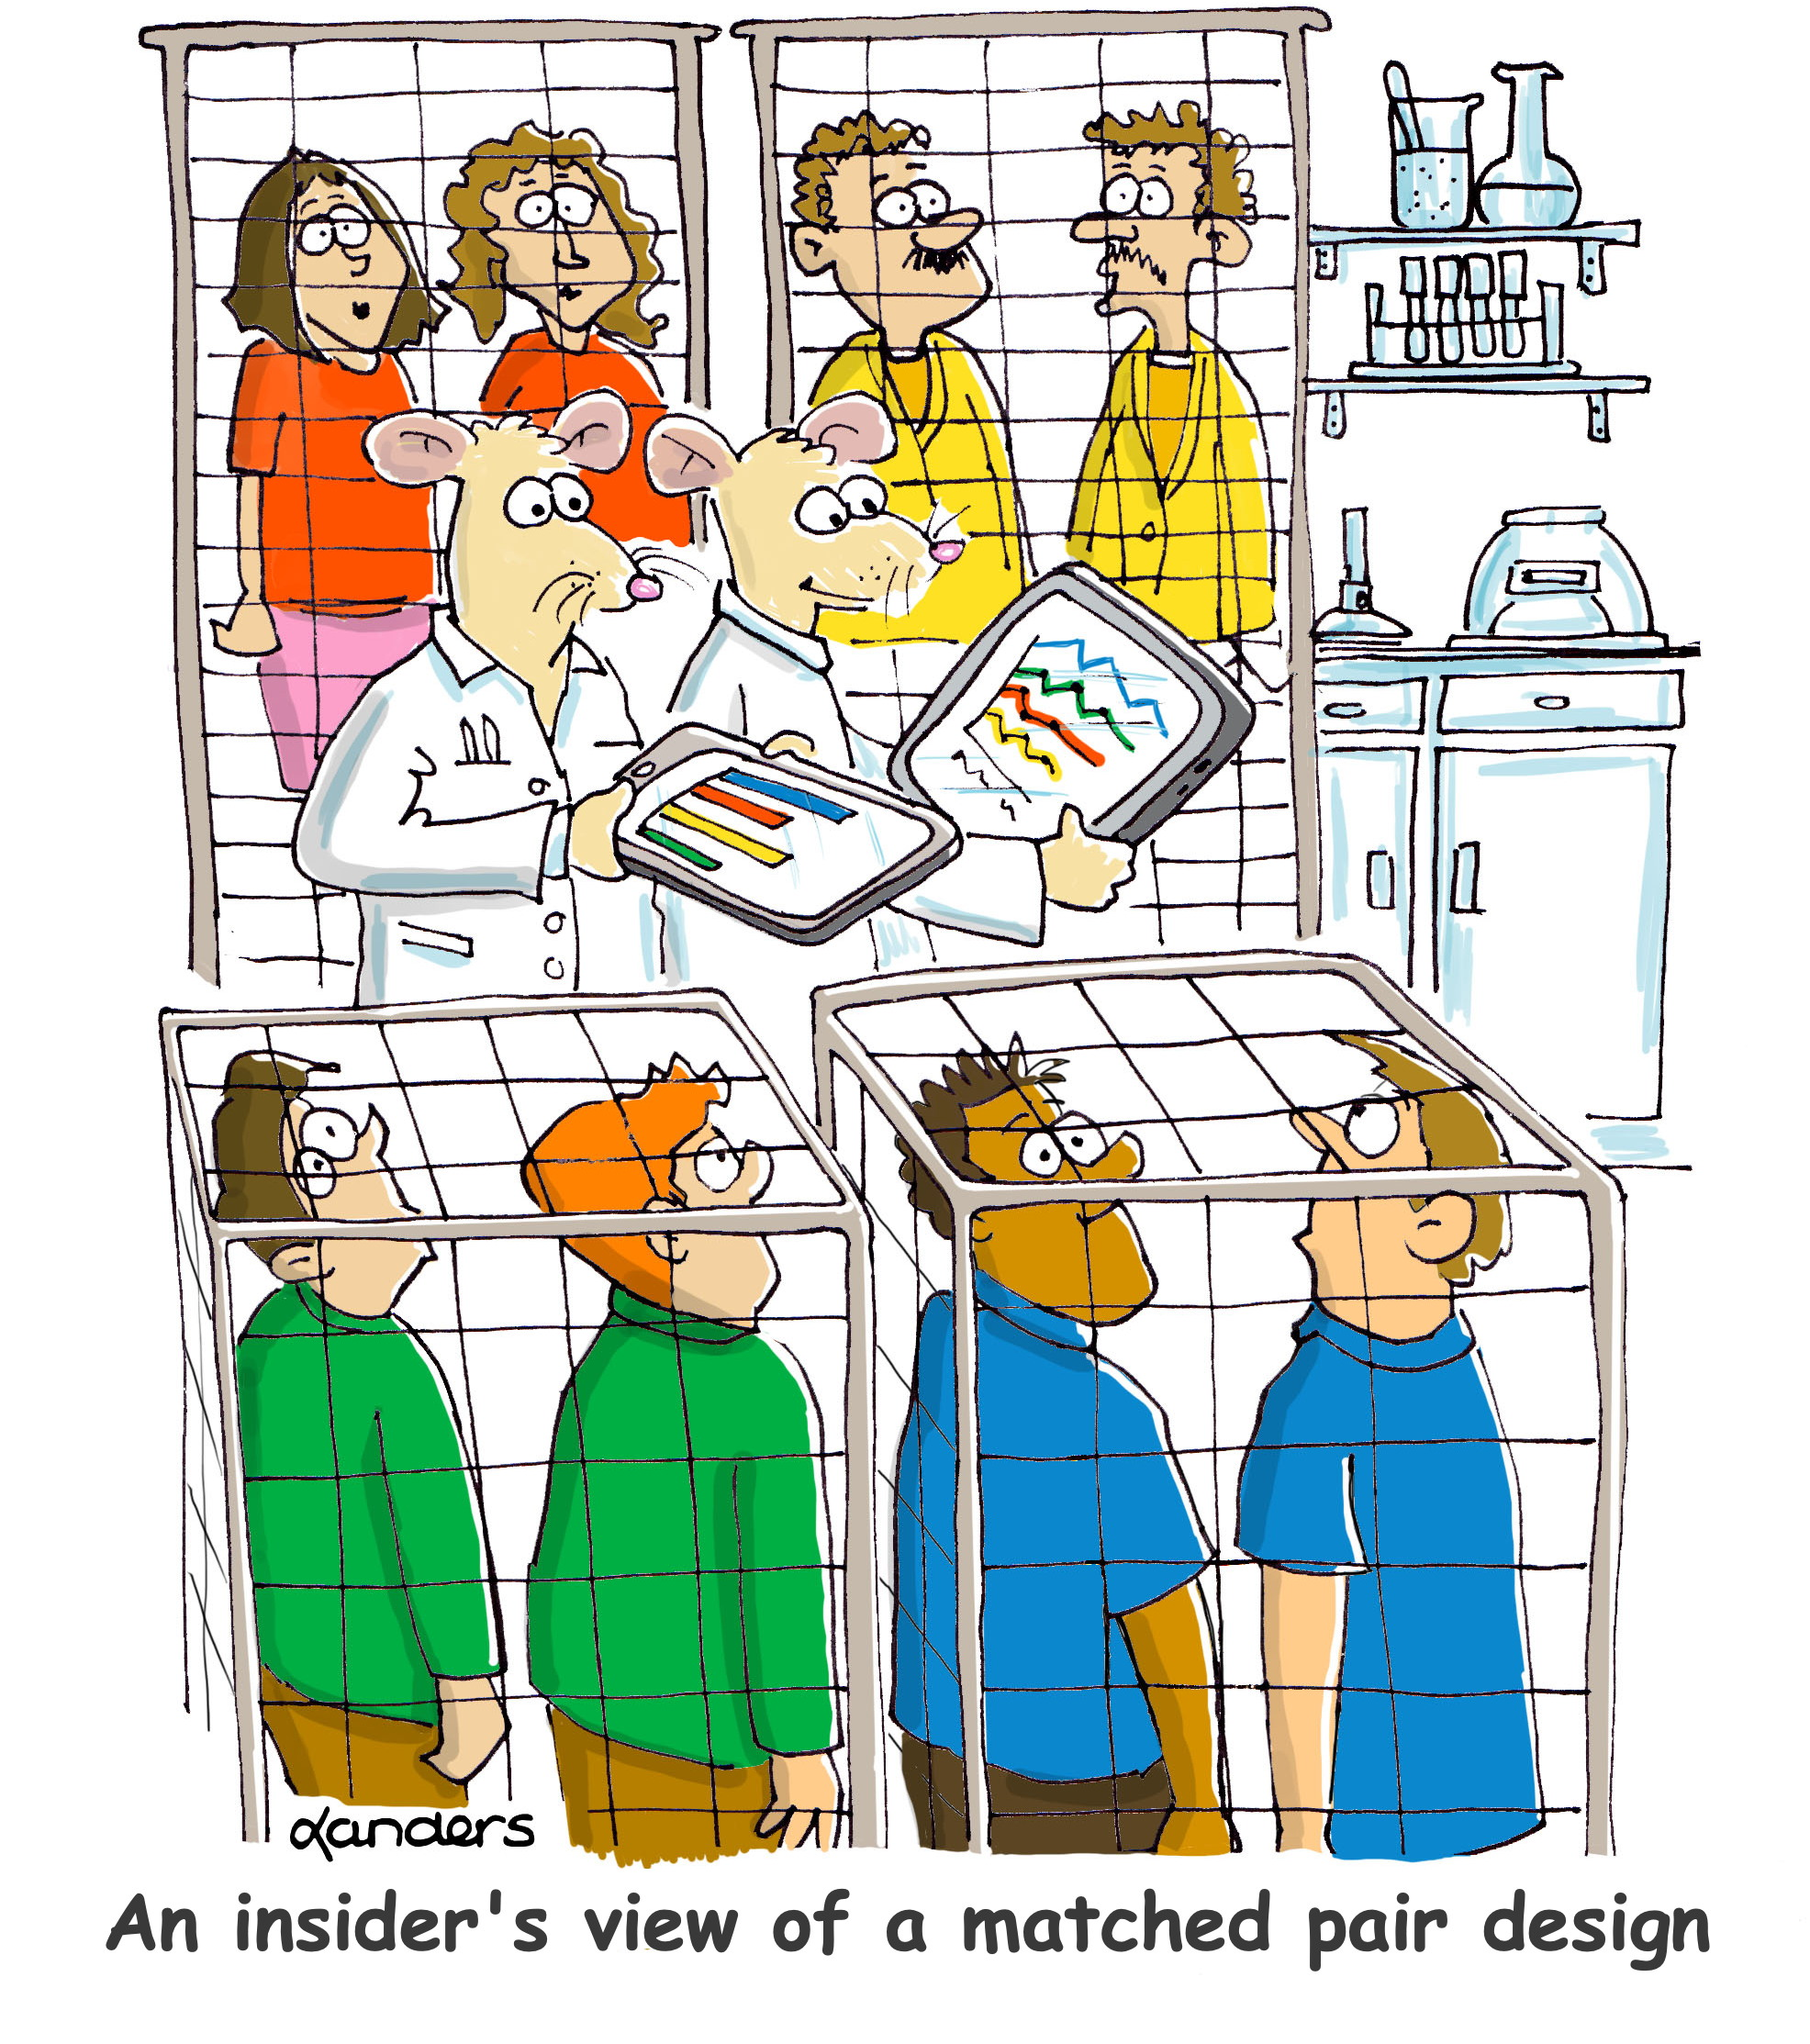 cartoon showing lab with people in cages and rats running the lab